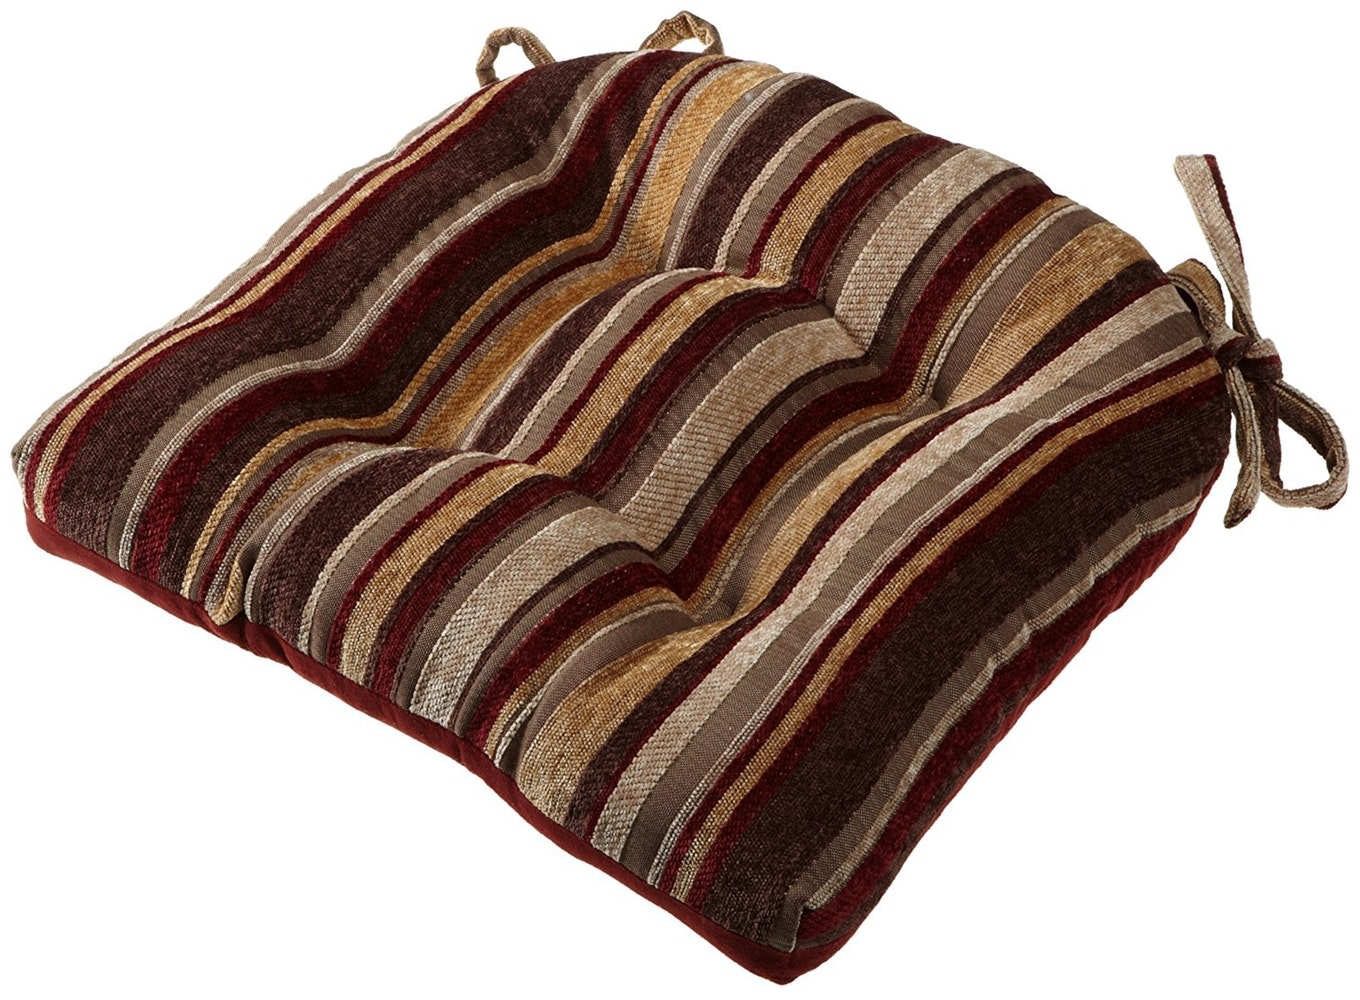 chair cushions with ties round kitchen chair cushions with ties without windsor also kitchen chair cushions with ties on popular kitchen trends